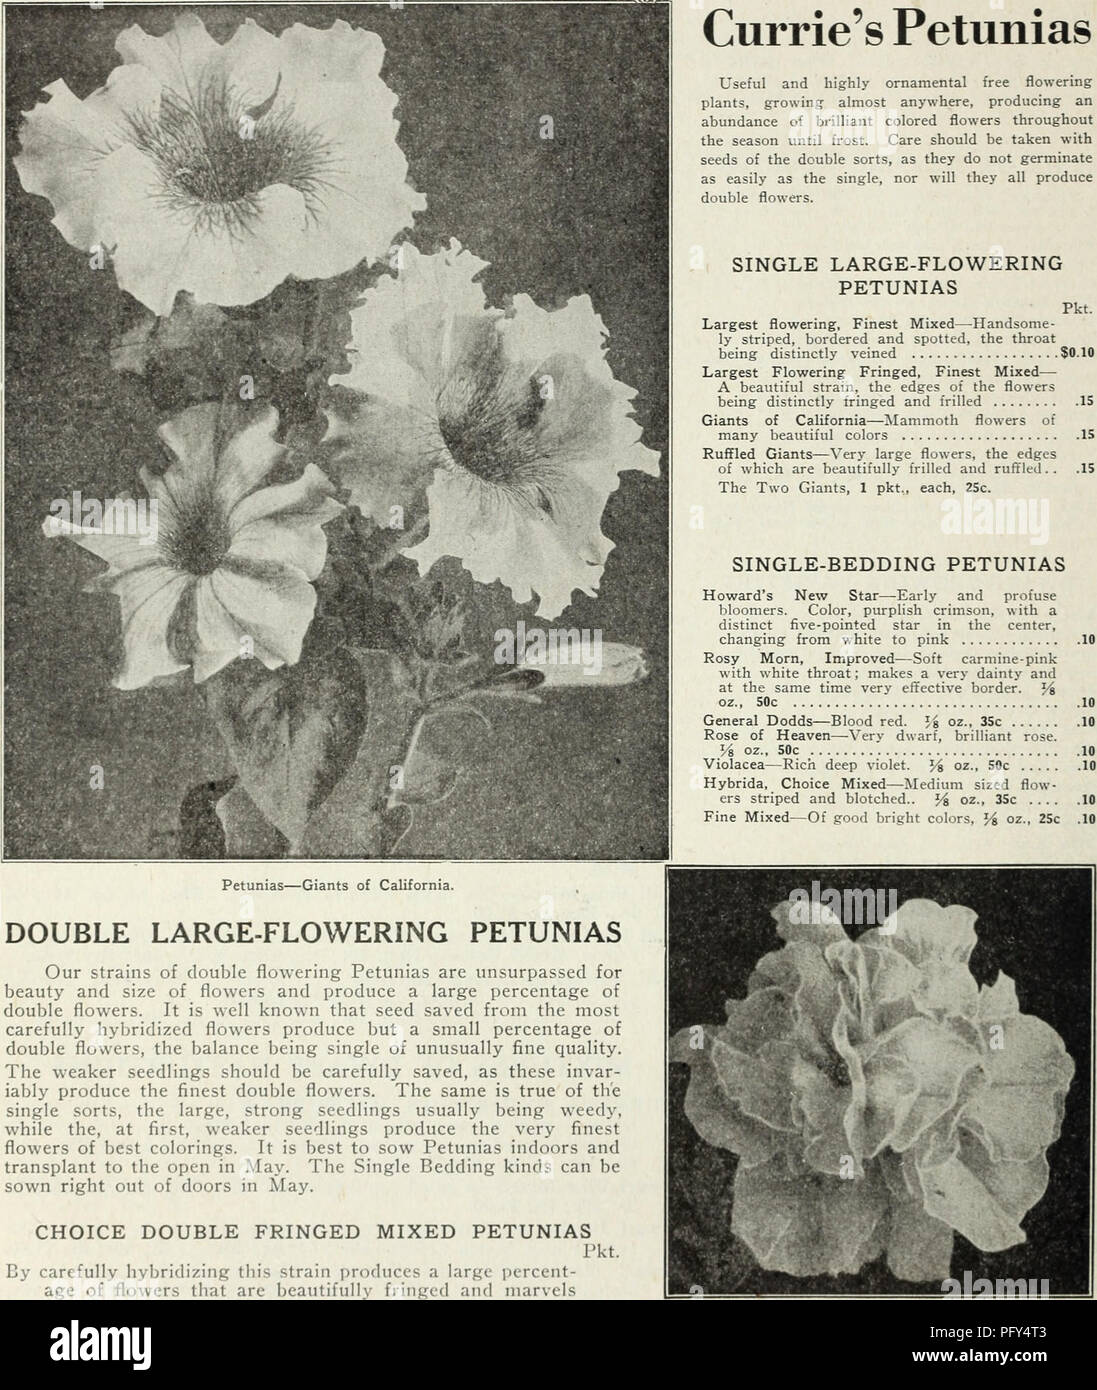 . Currie's farm and garden annual : spring 1930. Flowers Seeds Catalogs; Bulbs (Plants) Seeds Catalogs; Vegetables Seeds Catalogs; Nurseries (Horticulture) Catalogs; Plants, Ornamental Catalogs; Gardening Equipment and supplies Catalogs. Petunias—Giants of California. DOUBLE LARGE-FLOWERING PETUNIAS Our strains of double flowering Petunias are unsurpassed for beauty and size of flowers and produce a large percentage of double flowers. It is well known that seed saved from the most carefully hybridized flowers produce but a small percentage of double flowers, the balance being single of unusual Stock Photo